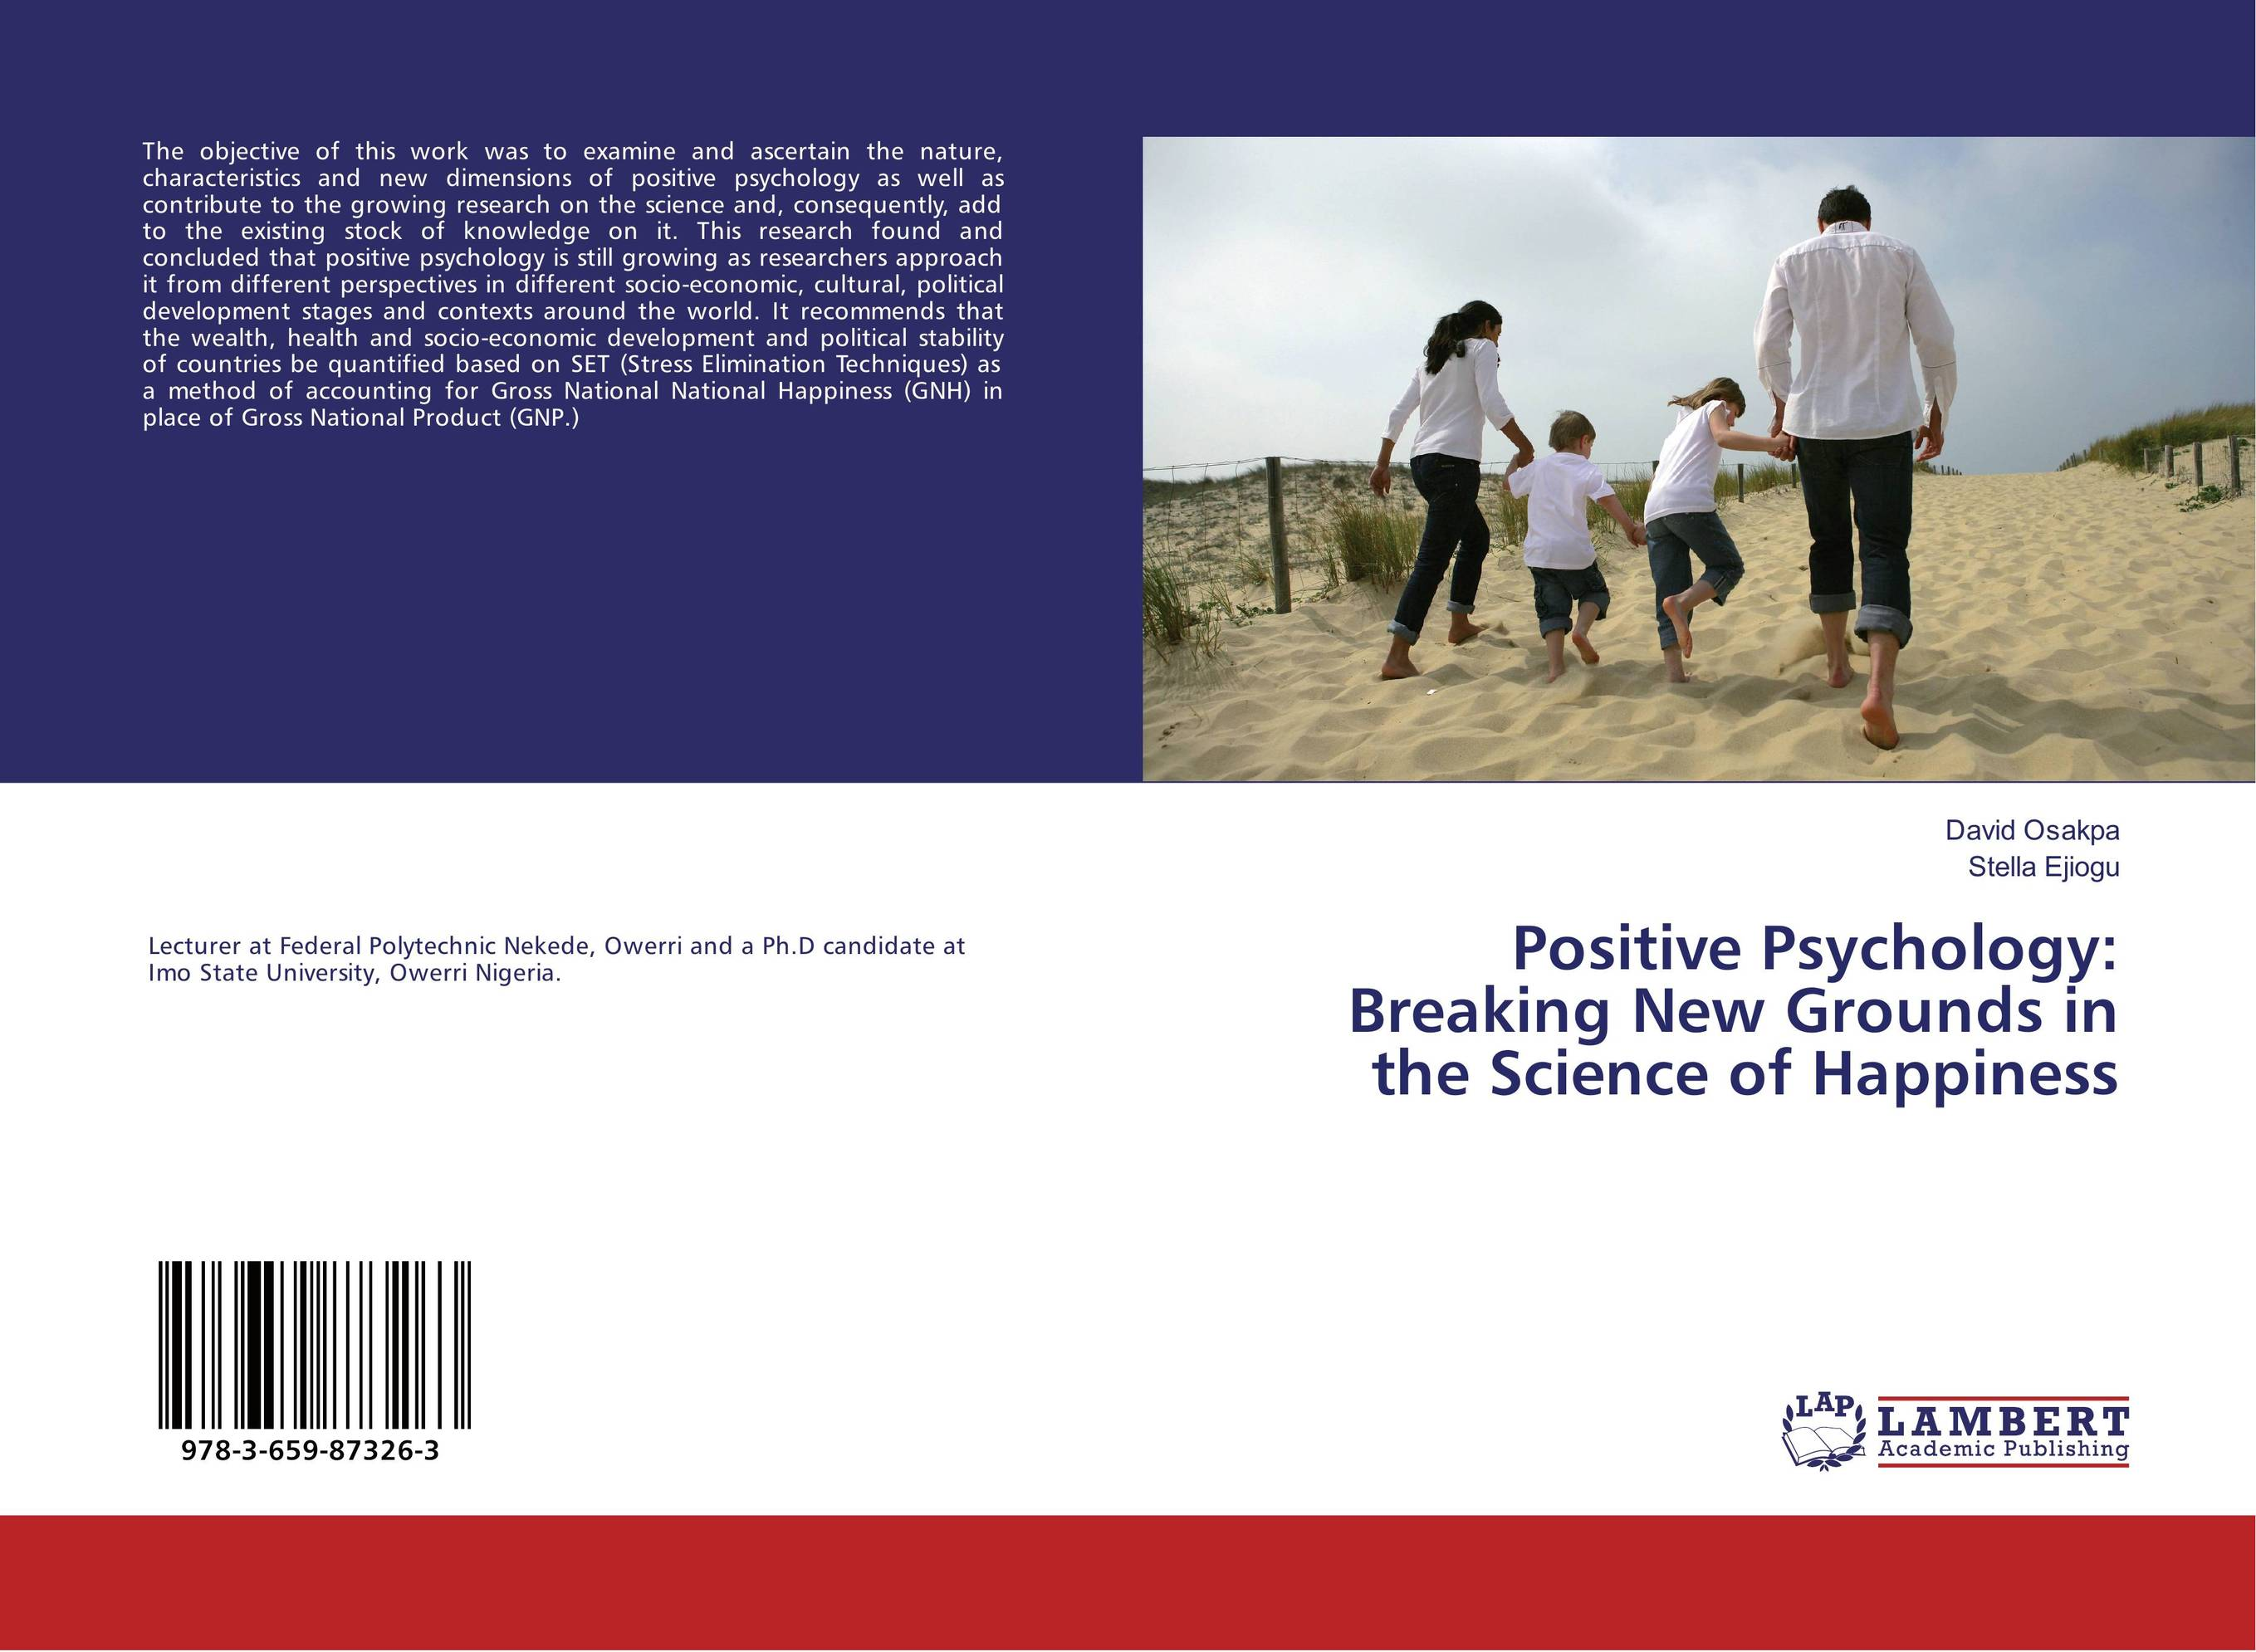 Positive Psychology: Breaking New Grounds in the Science of Happiness voluntary associations in tsarist russia – science patriotism and civil society